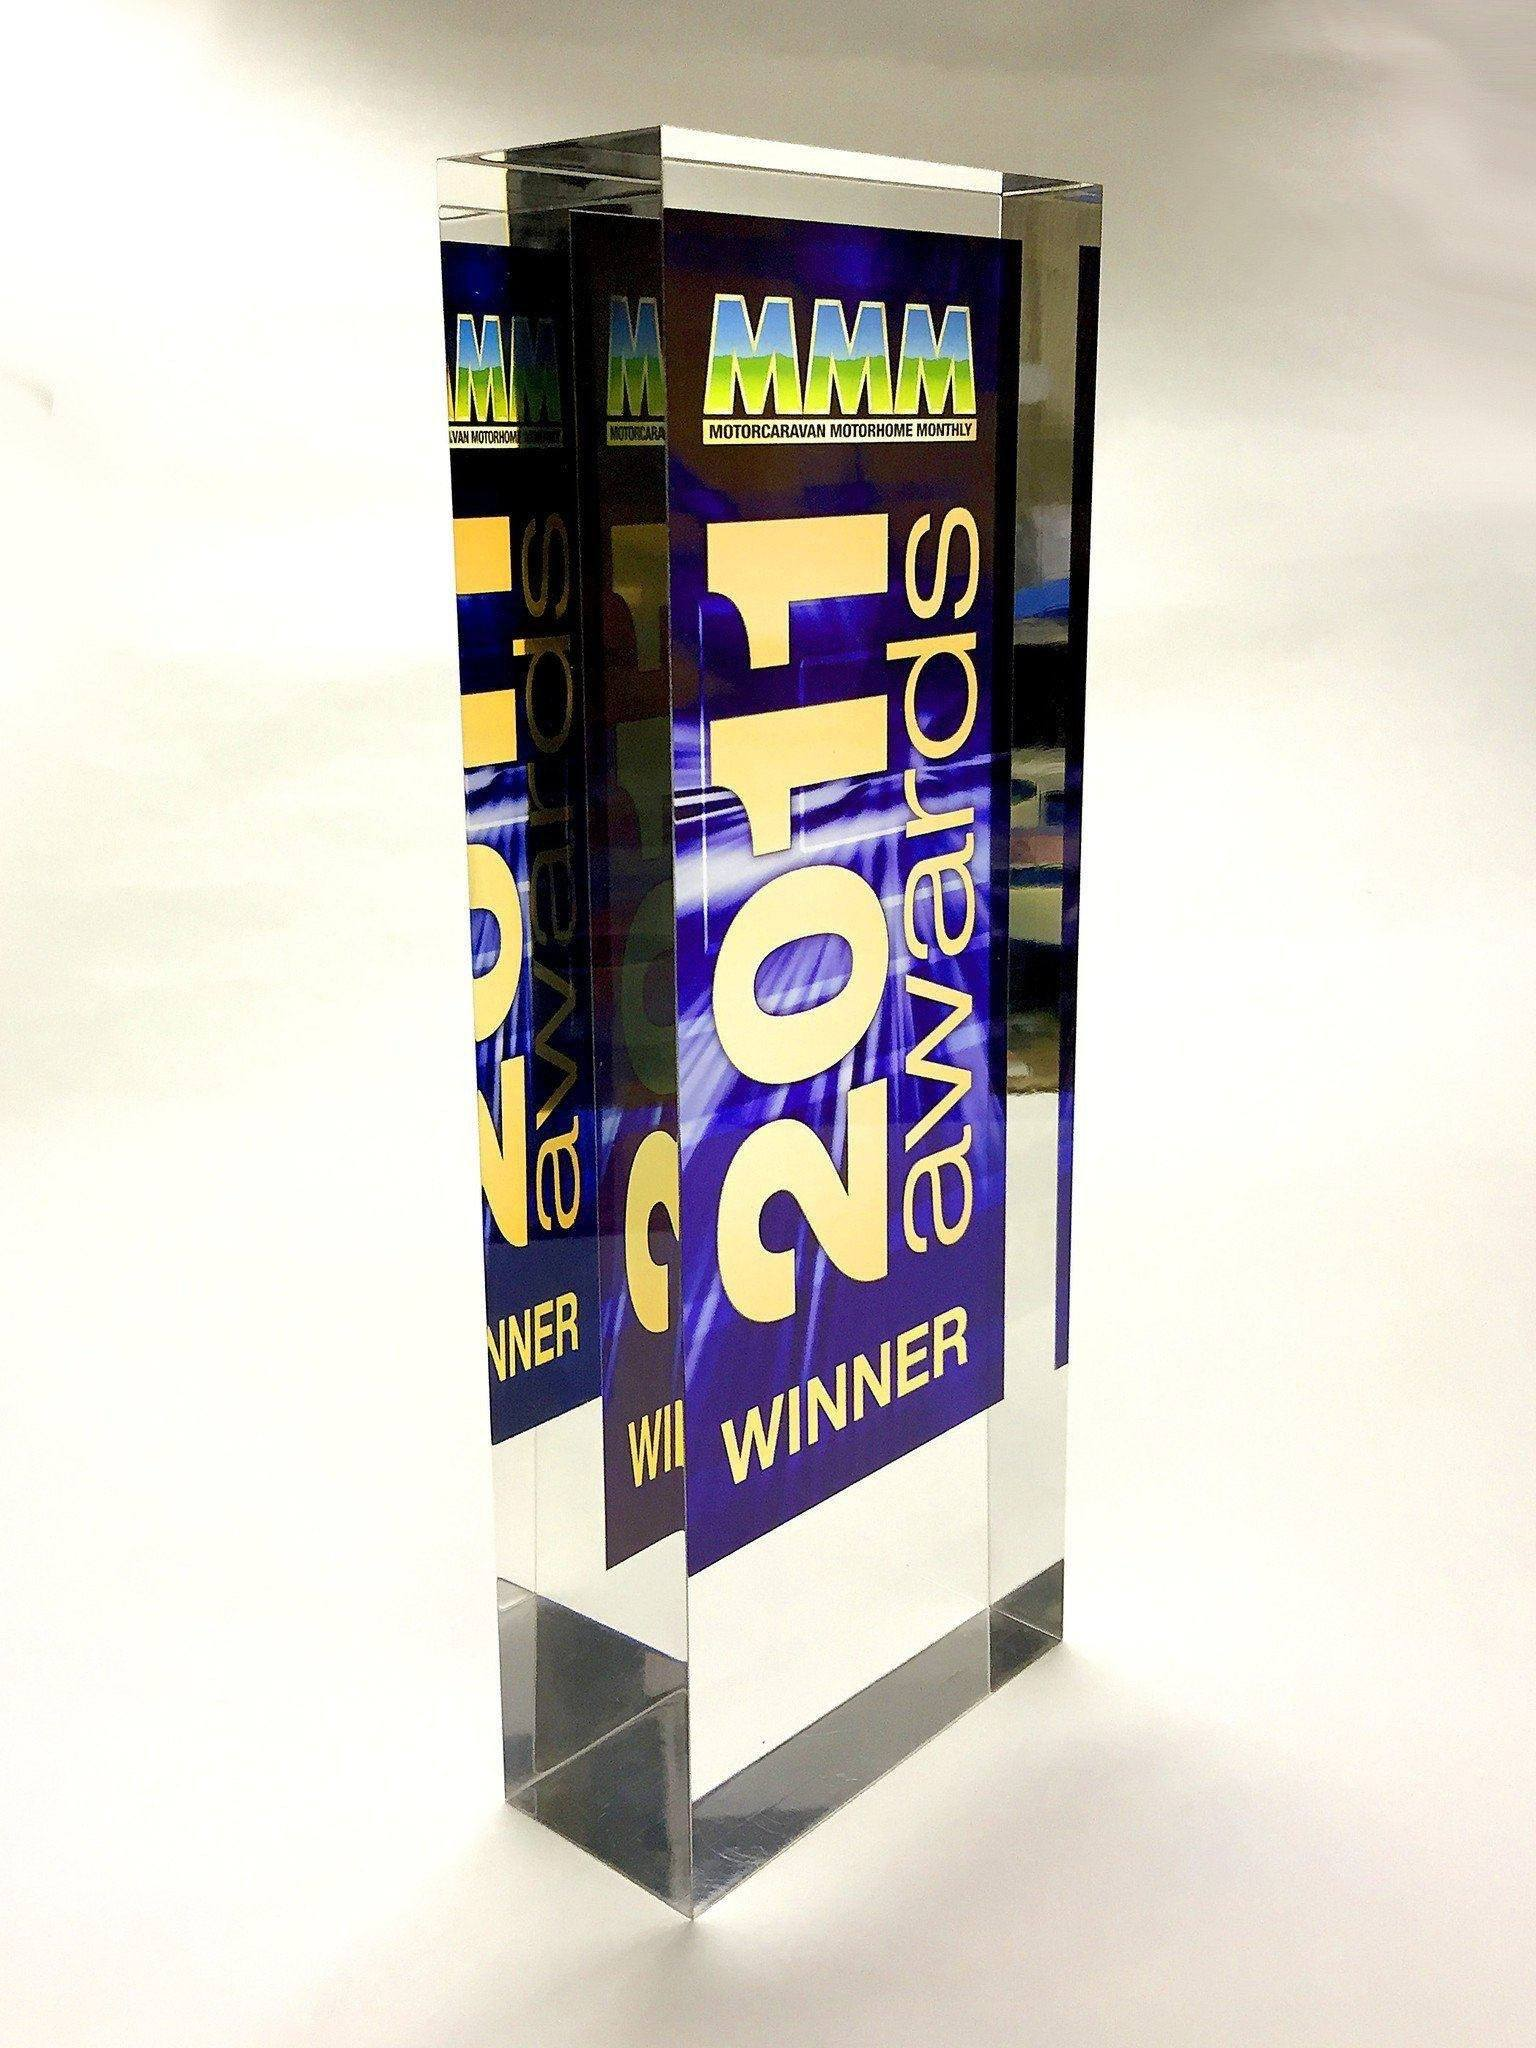 Motorcaravan Motorhome Monthly acrylic Award Bespoke Acrylic Awards Creative Awards